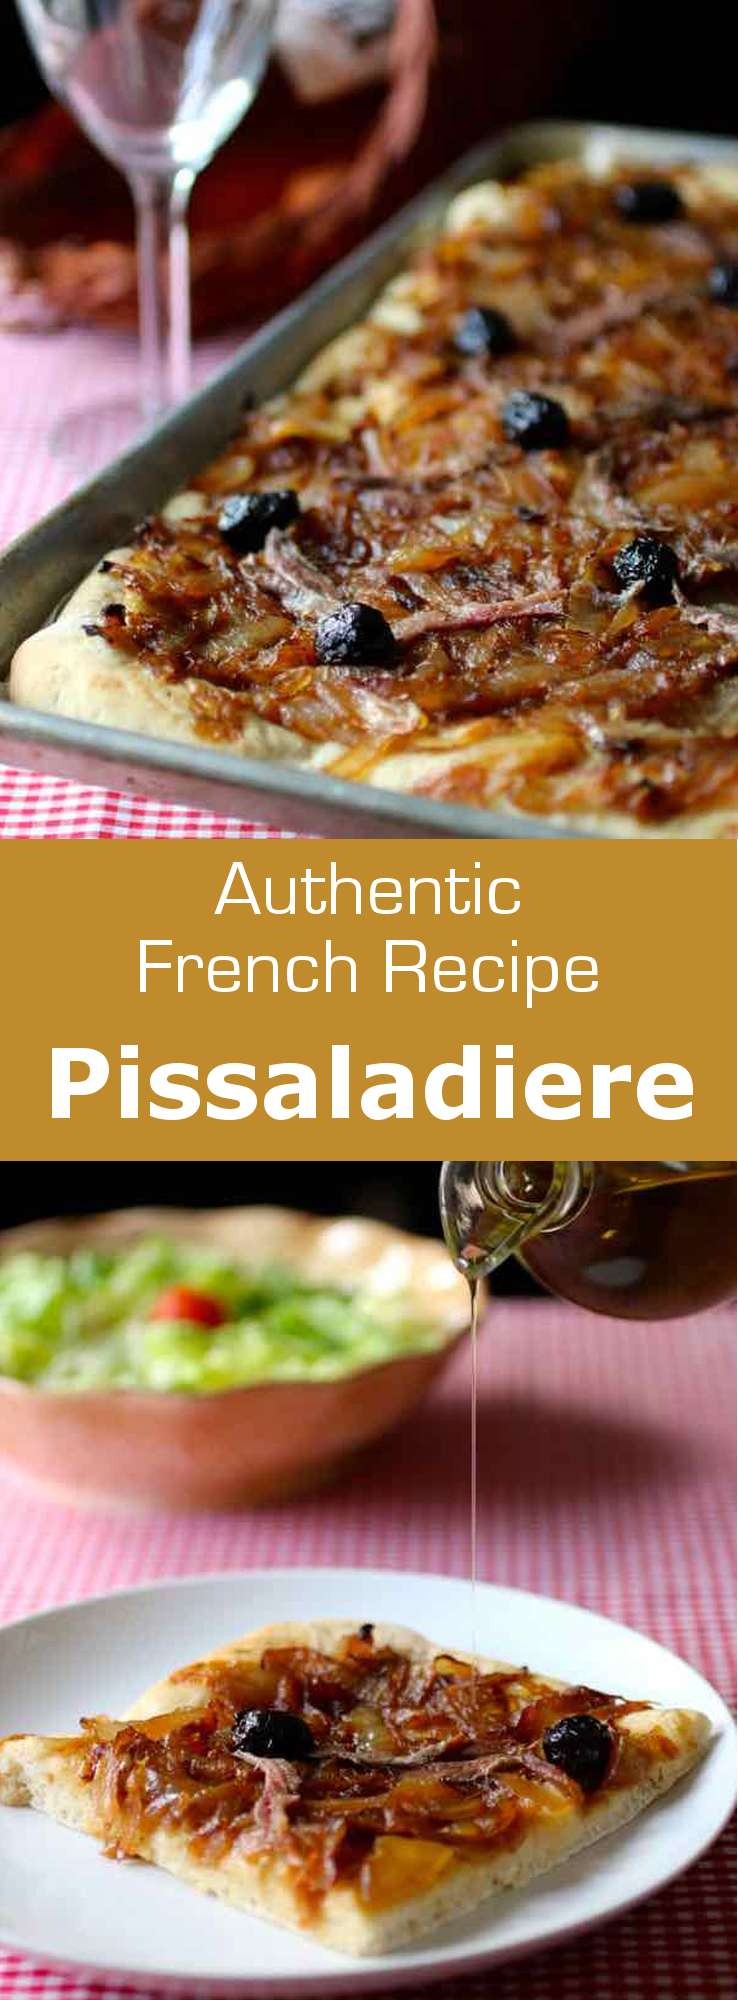 Pissaladiere, a flatbread from the South of France, is a great recipe idea for the summer picnics since it can be eaten hot, cold than lukewarm. #France #Nice #Provence #196flavors